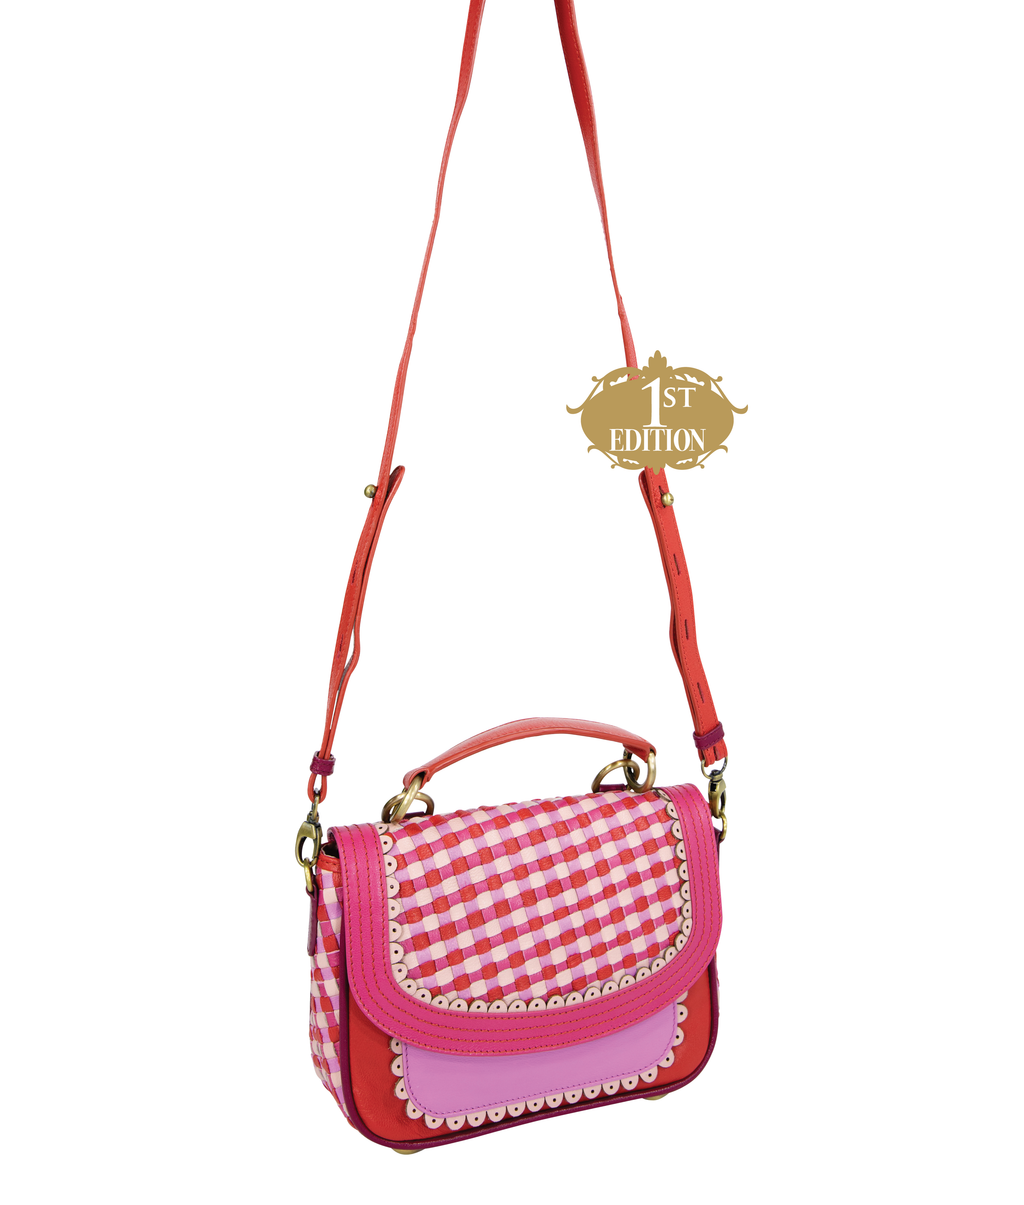 KATE Mini Crossbody - Fireworks - 1st Edition